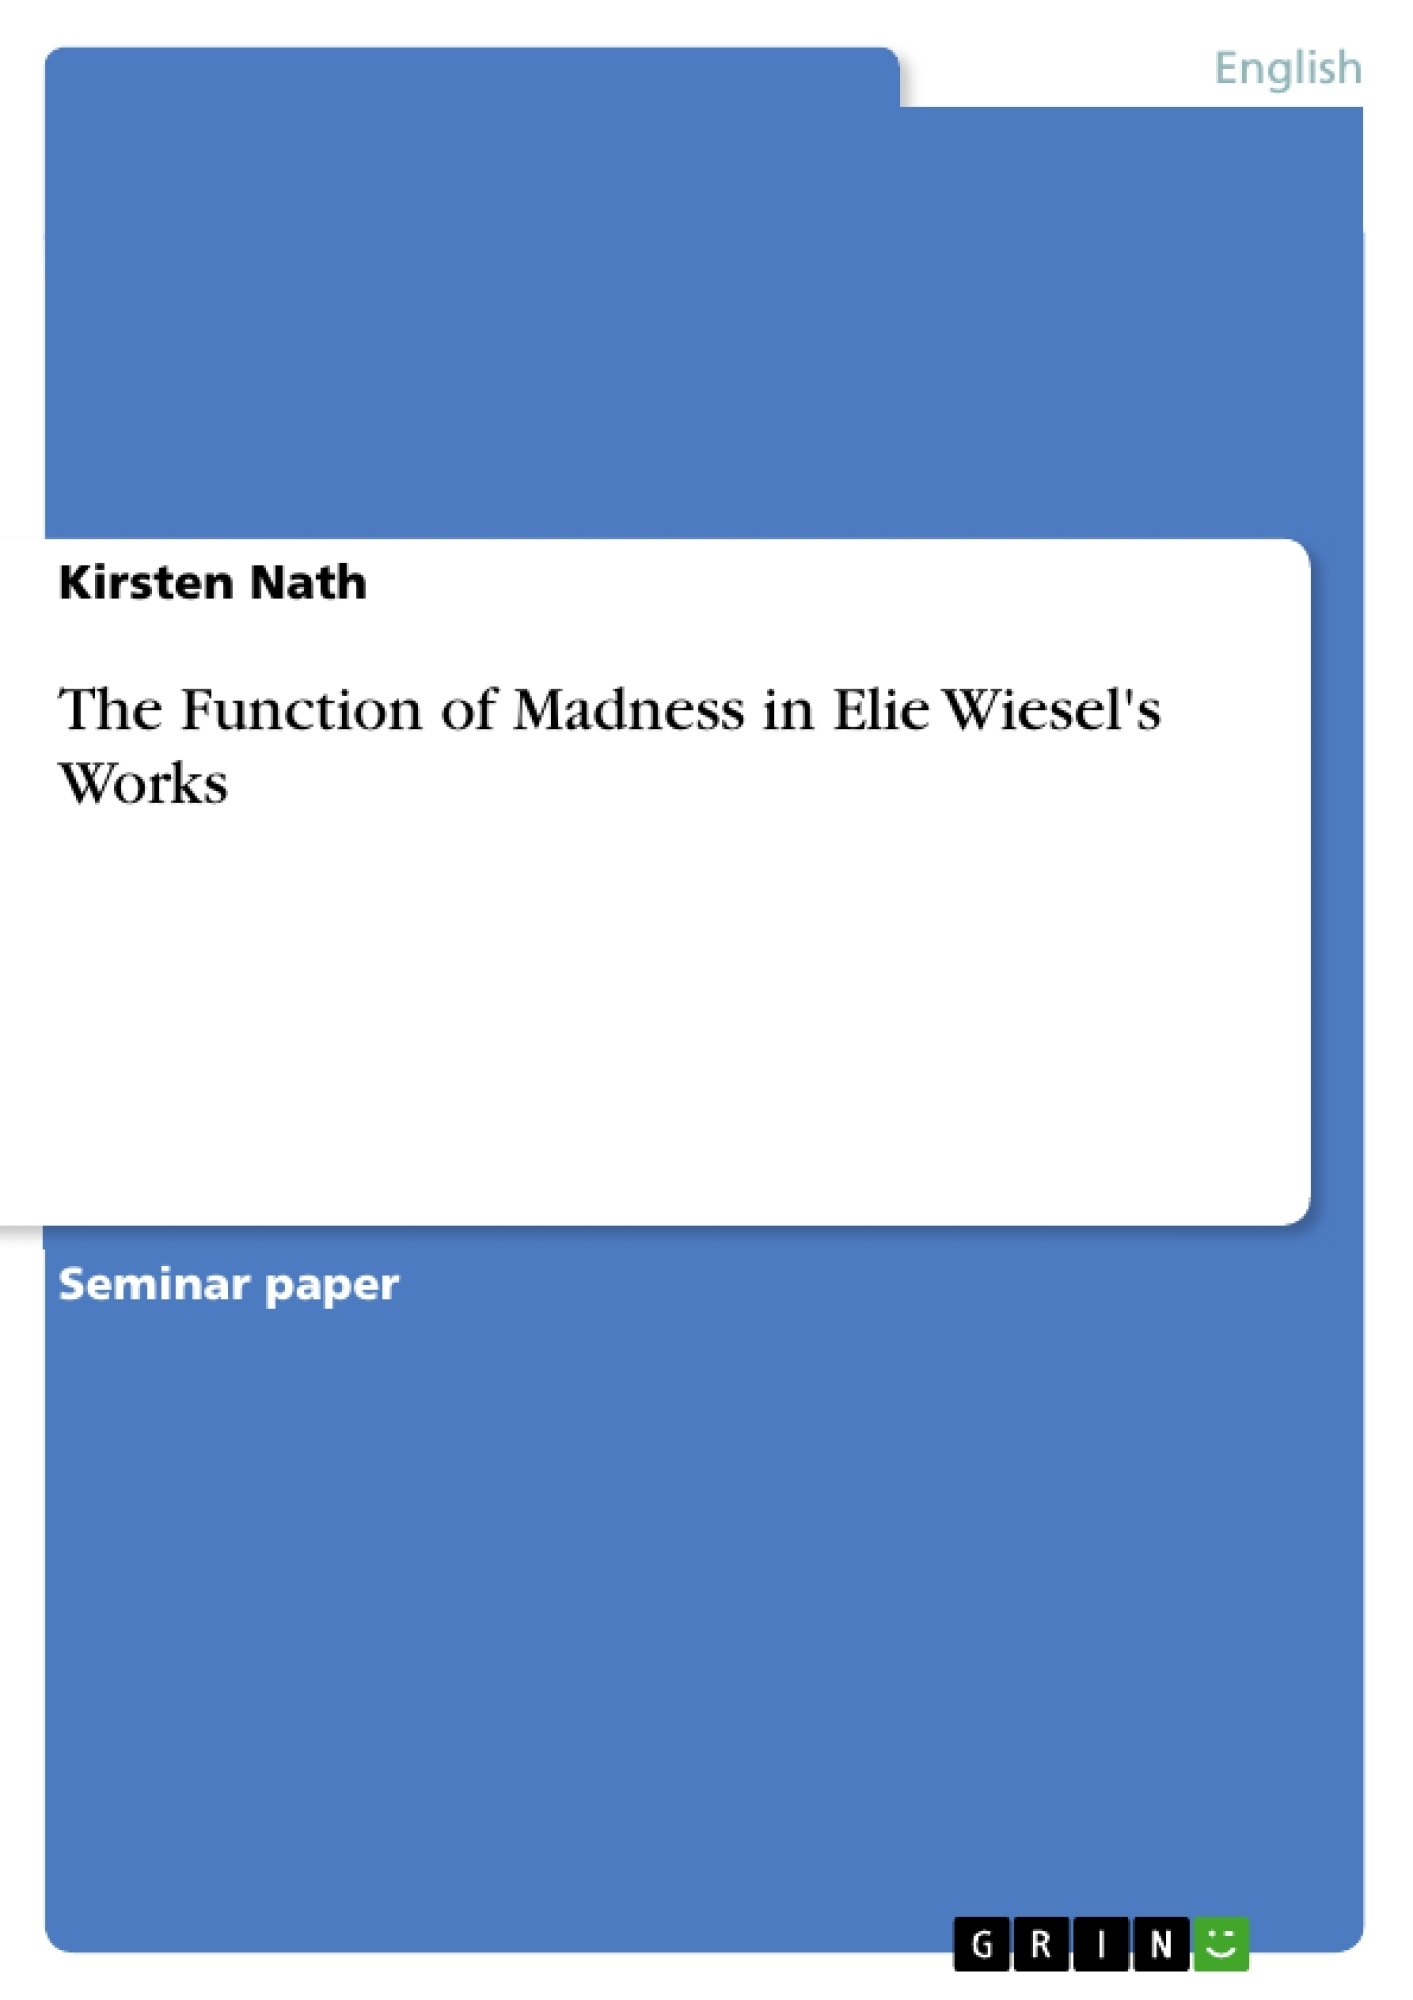 the function of madness in elie wiesel s works publish your the function of madness in elie wiesel s works publish your master s thesis bachelor s thesis essay or term paper